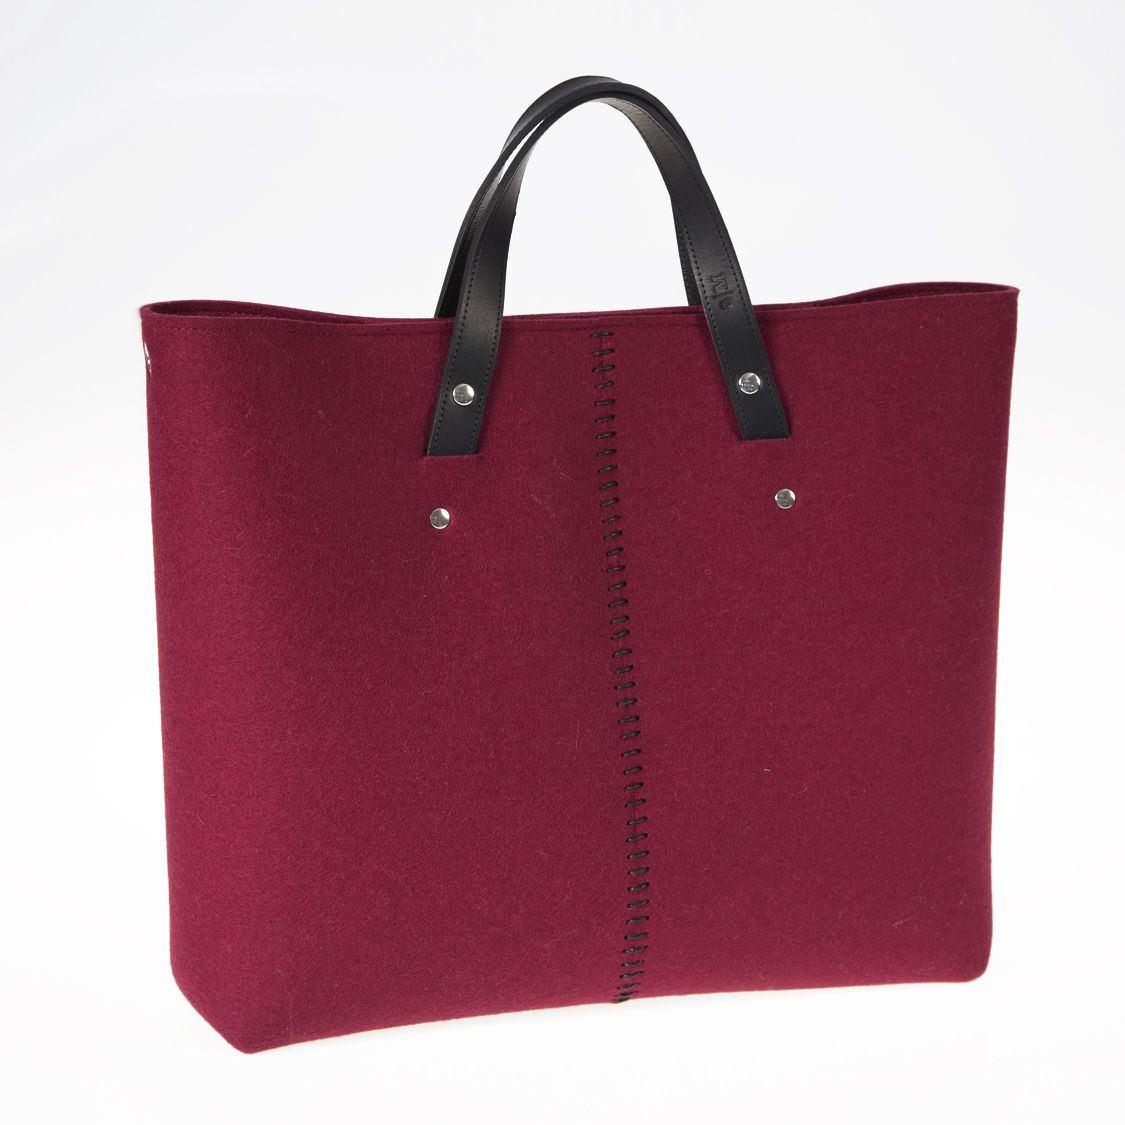 Bag a mano in feltro color bordeaux by @anonimamente. Una borsa originale per la vostra vita quotidiana, spaziosa e glamour.  100% feltro di lana.  Price: 85€